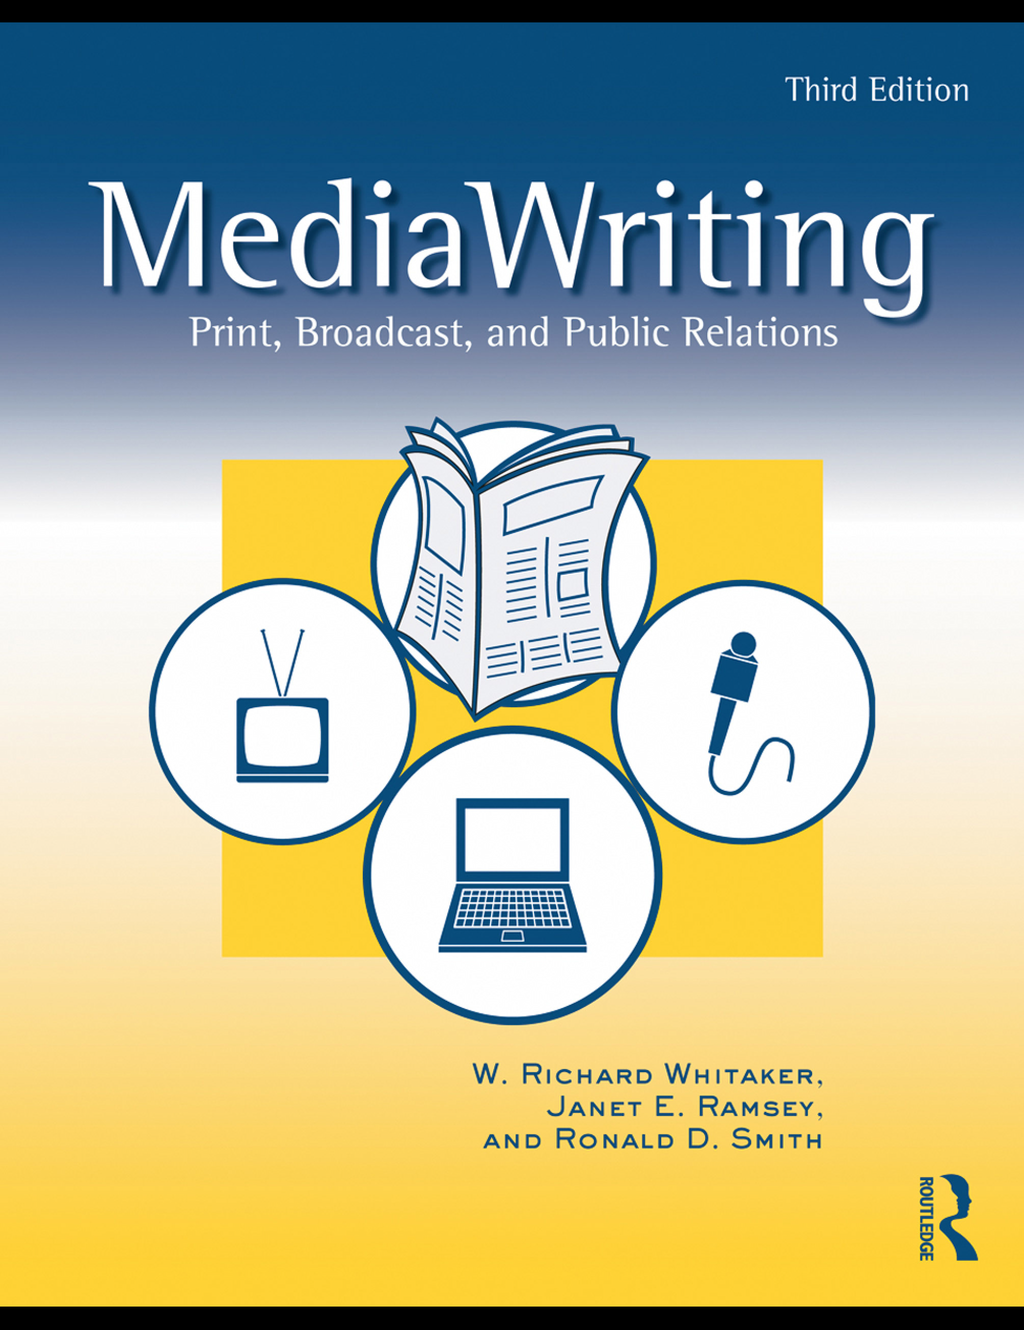 MediaWriting By: Janet E. Ramsey,Ronald D. Smith,W. Richard Whitaker